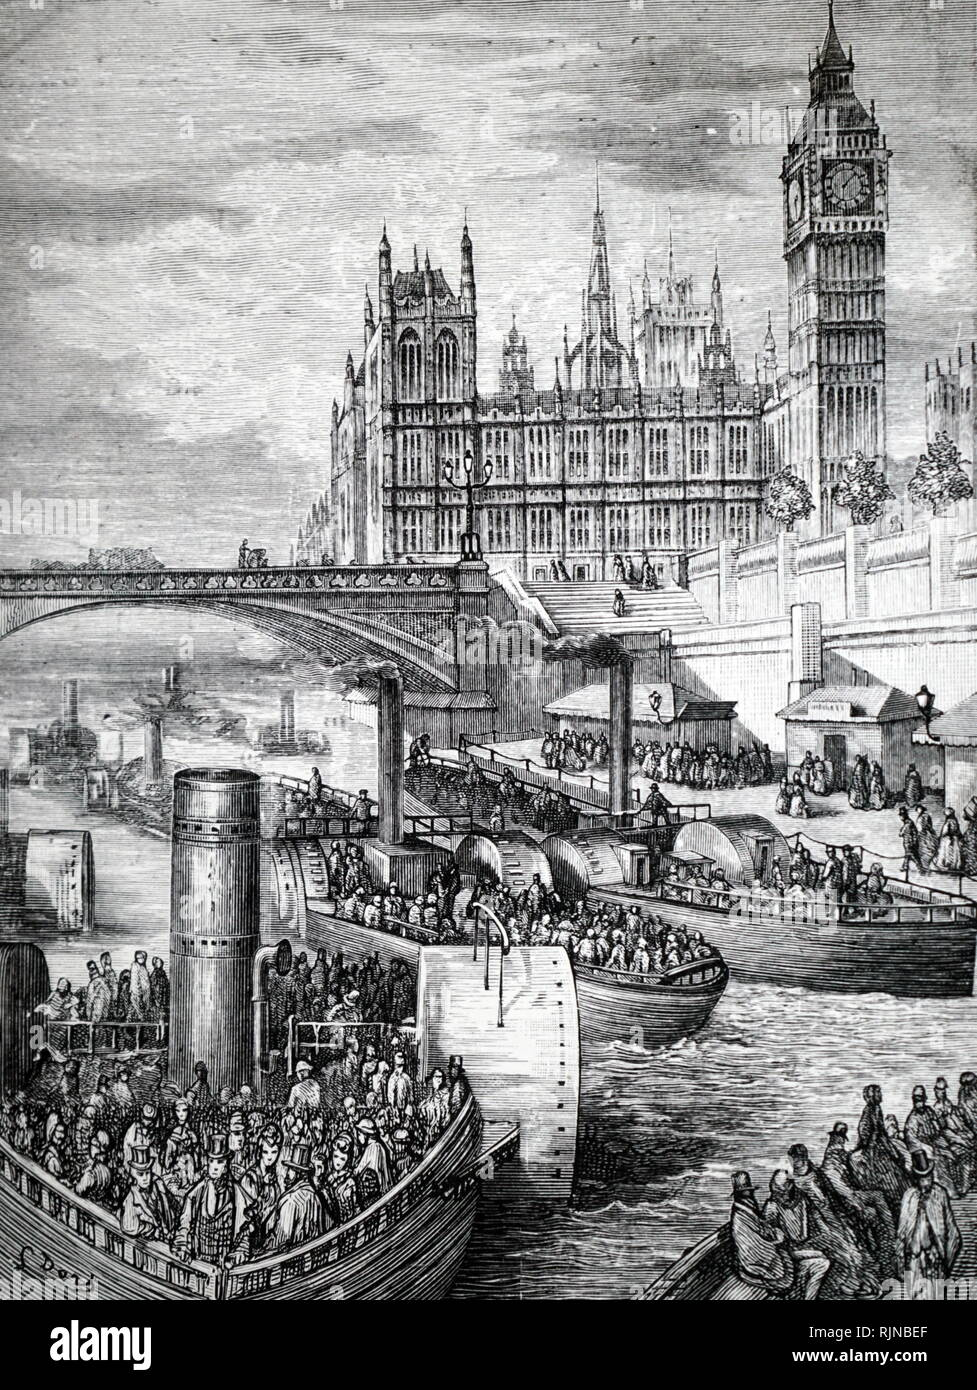 An engraving depicting steam launches on the Thames. Dated 19th century - Stock Image